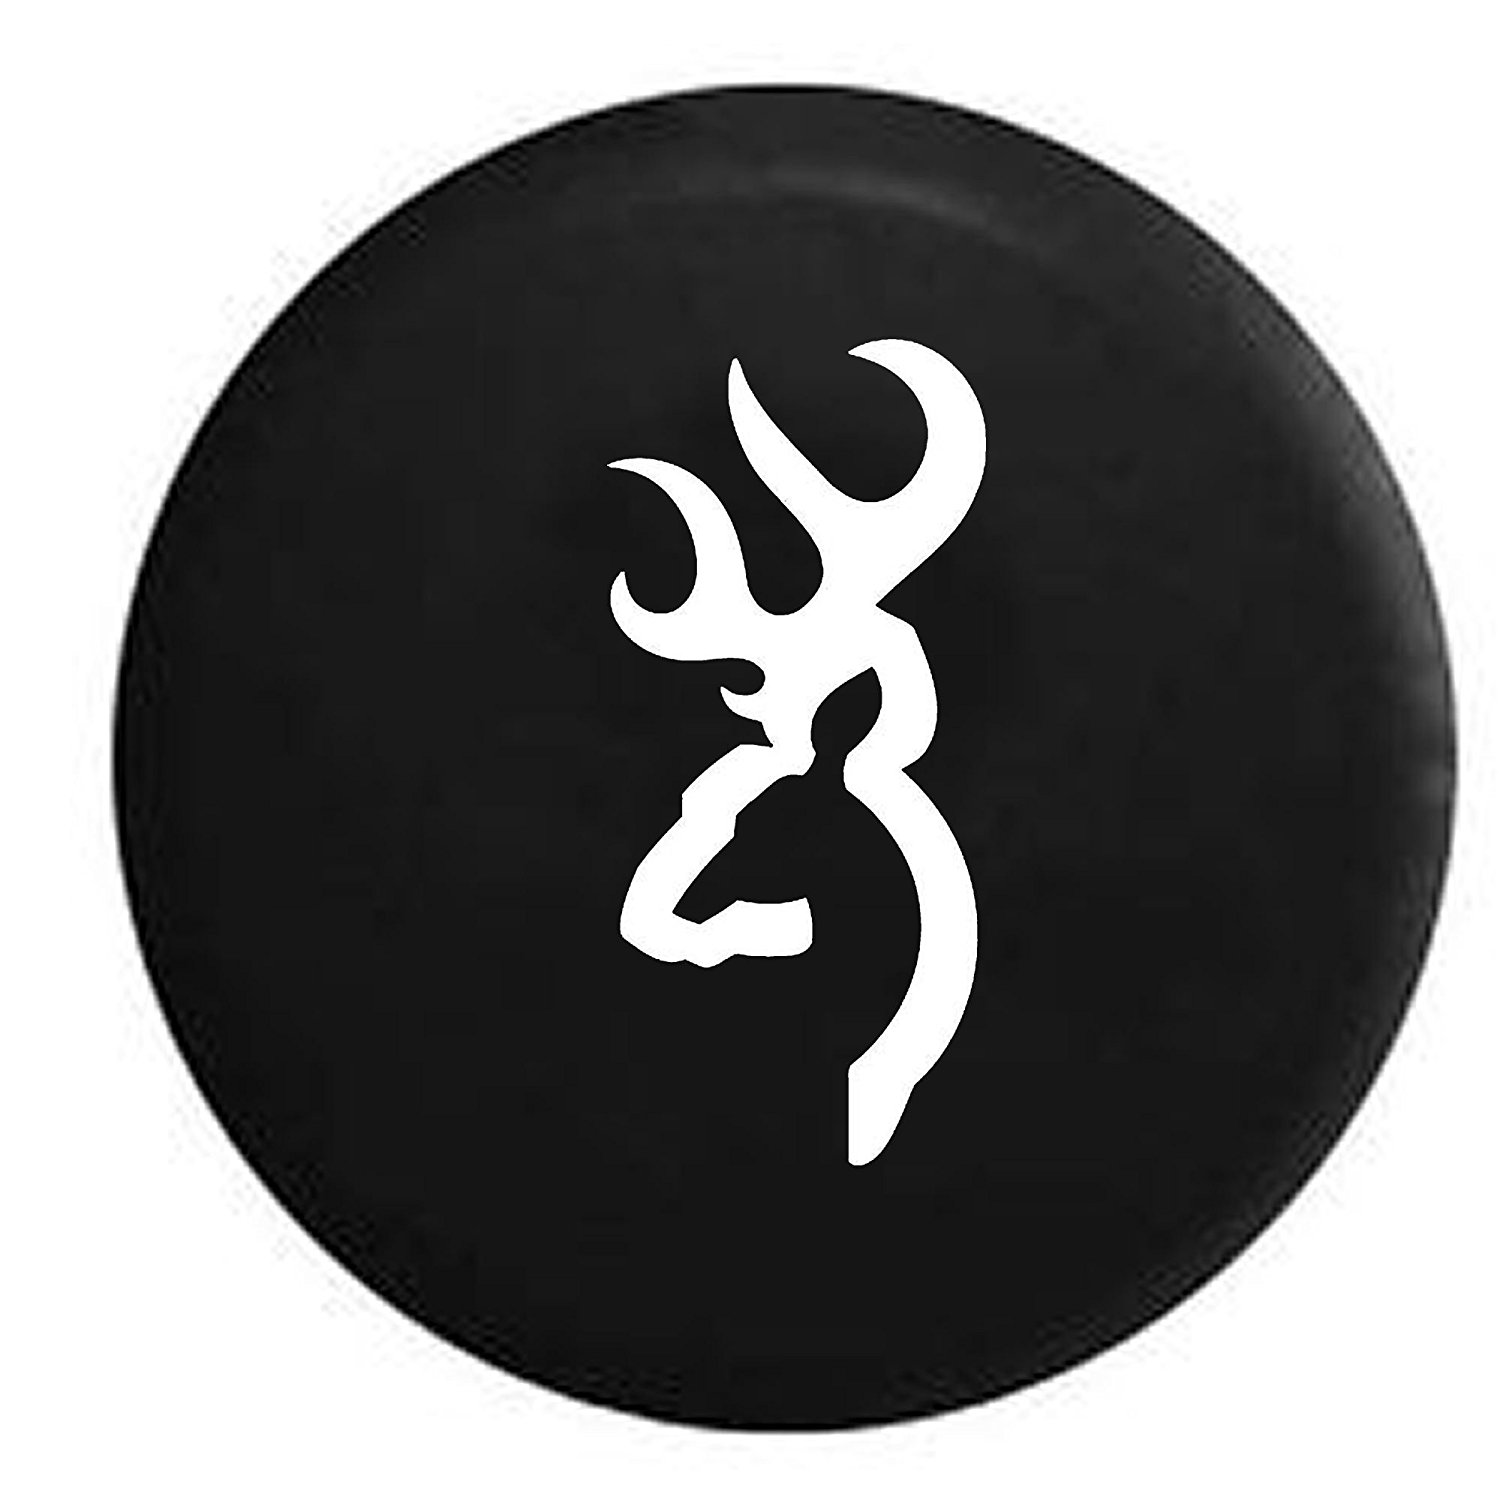 1500x1500 Browning Buckmark Deer Hunting Spare Tire Cover Oem